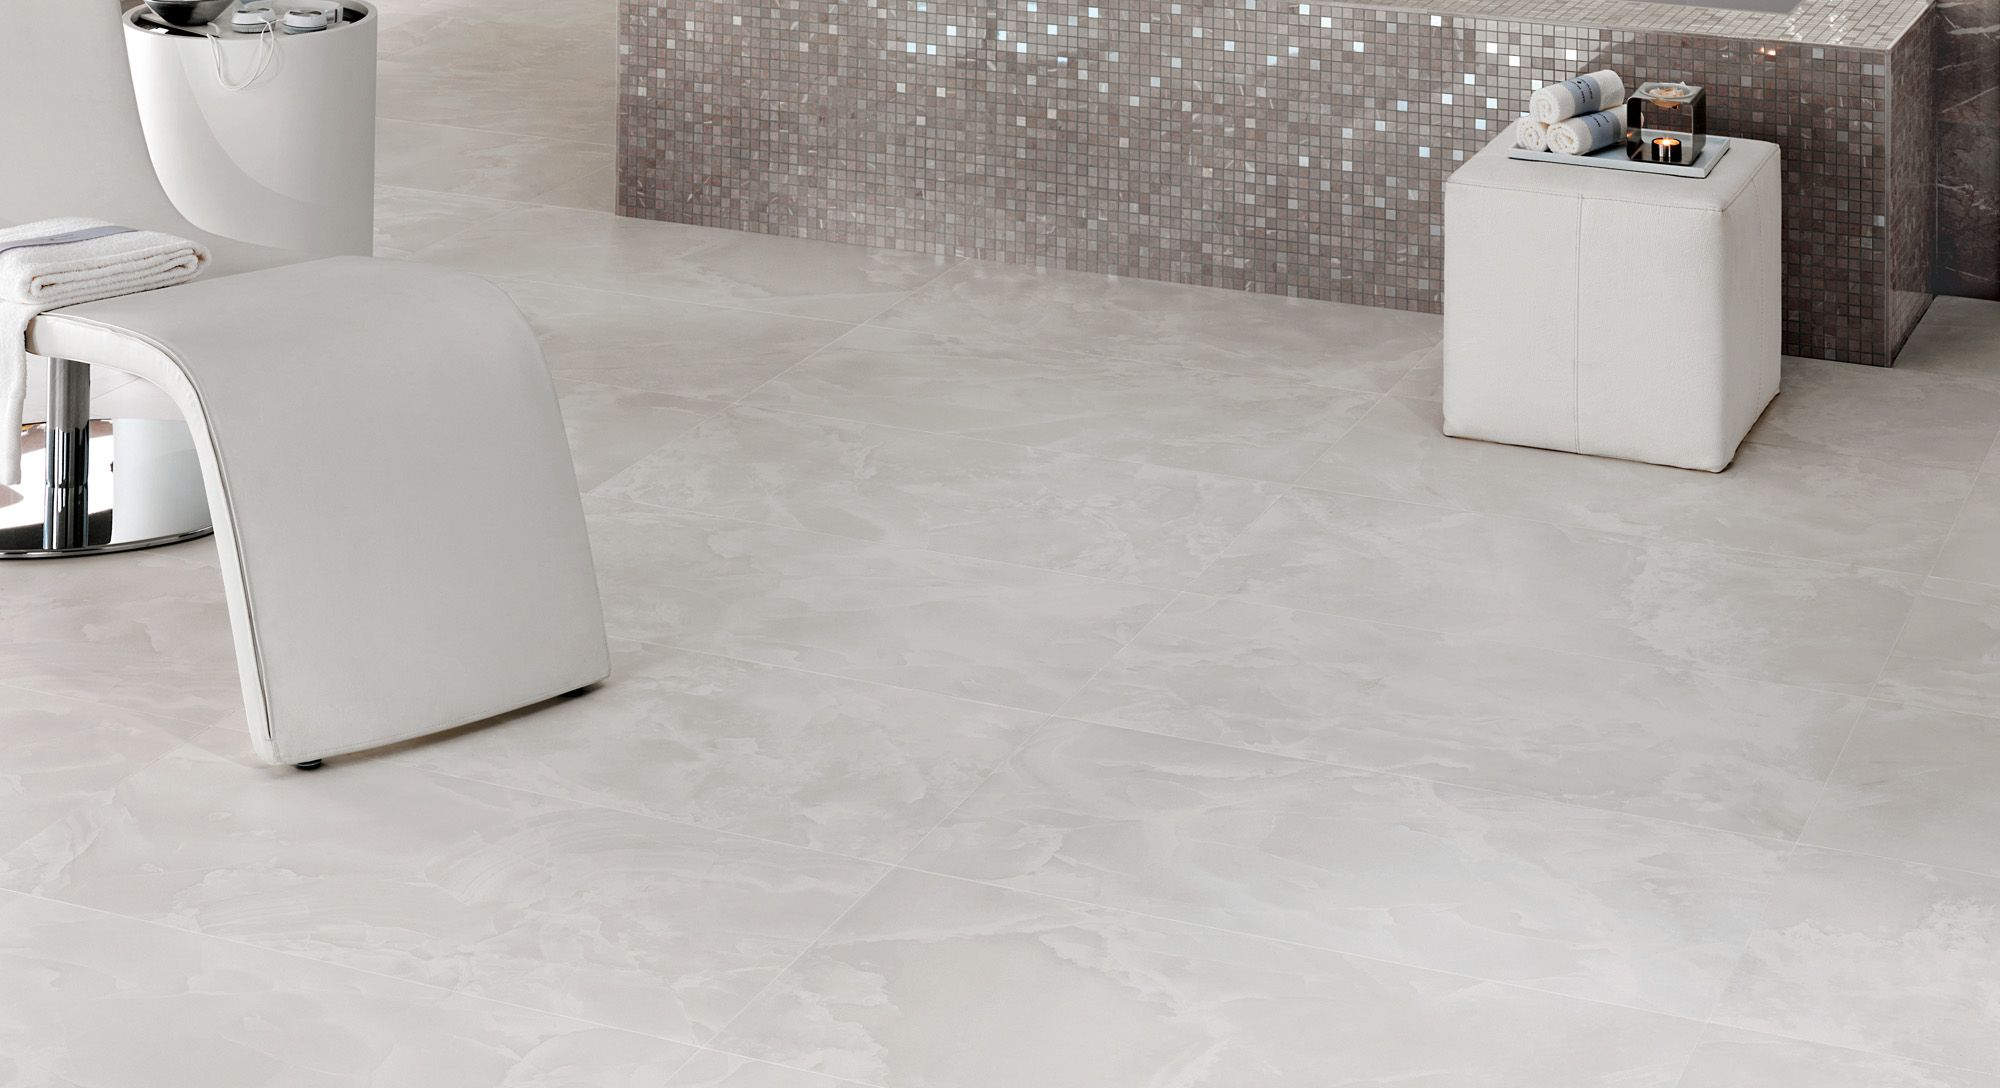 Minoli tiles pure lines and soft shade of this light grey marble minoli tiles pure lines and soft shade of this light grey marble look tile create dailygadgetfo Choice Image